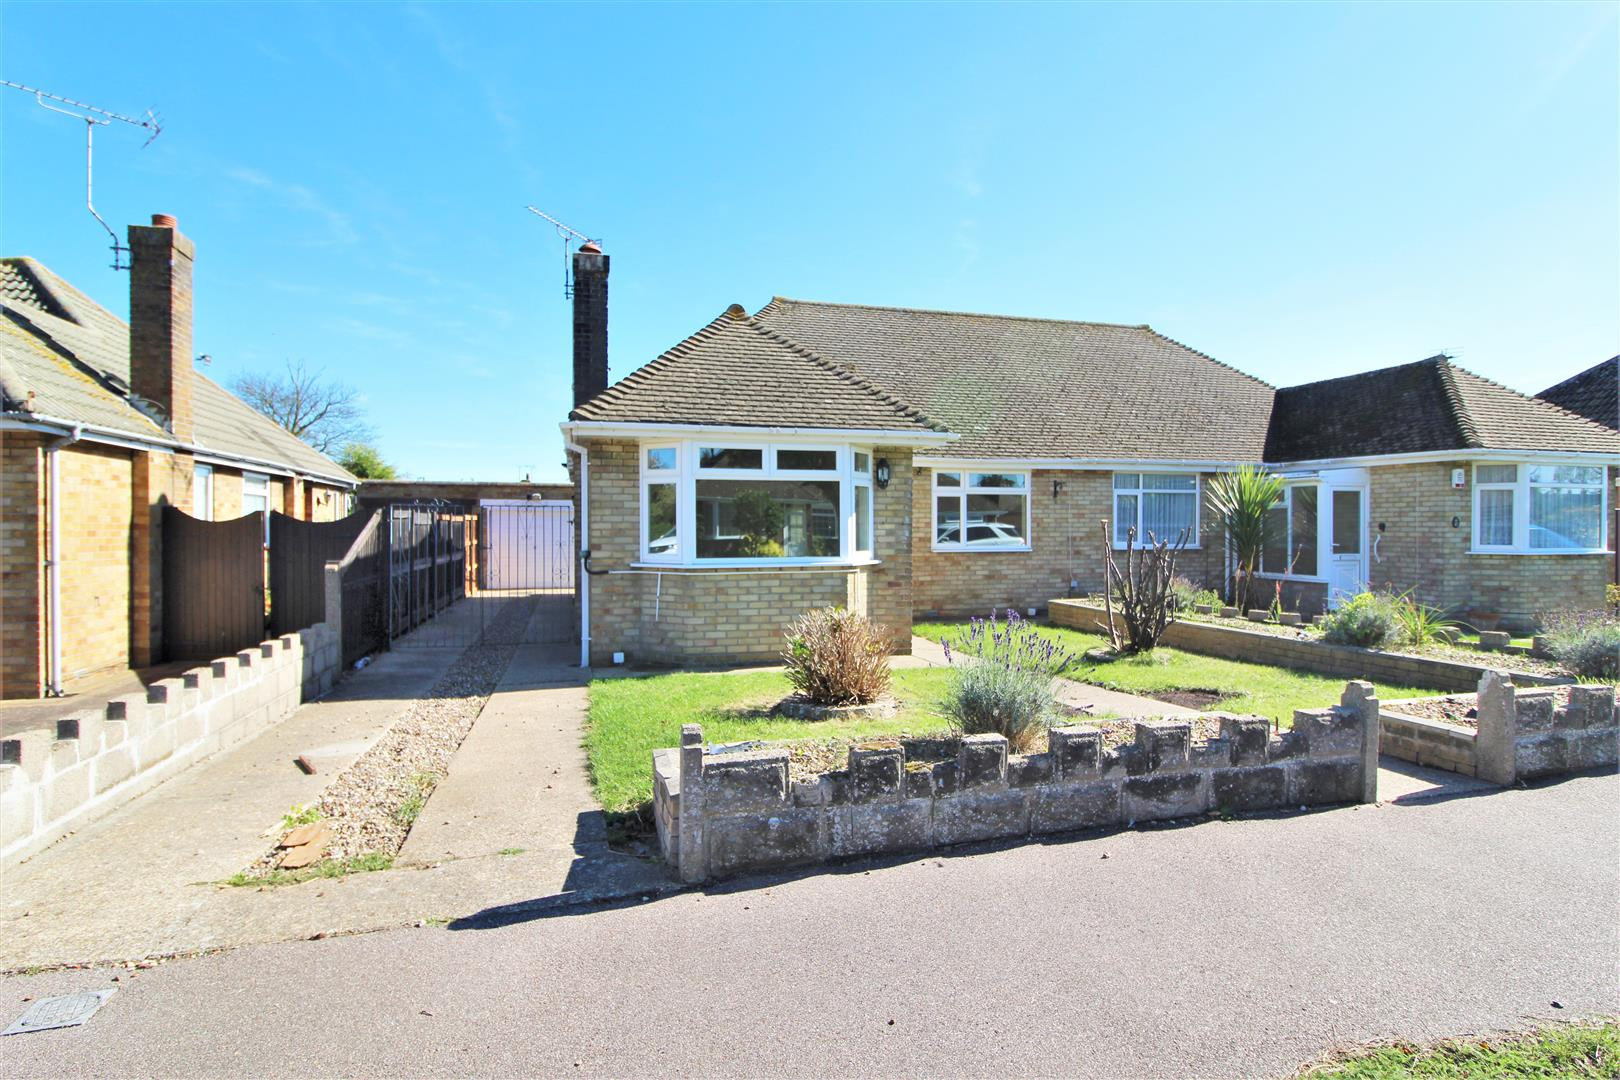 Buckfast Avenue, Kirby Cross, Essex, CO13 0PT